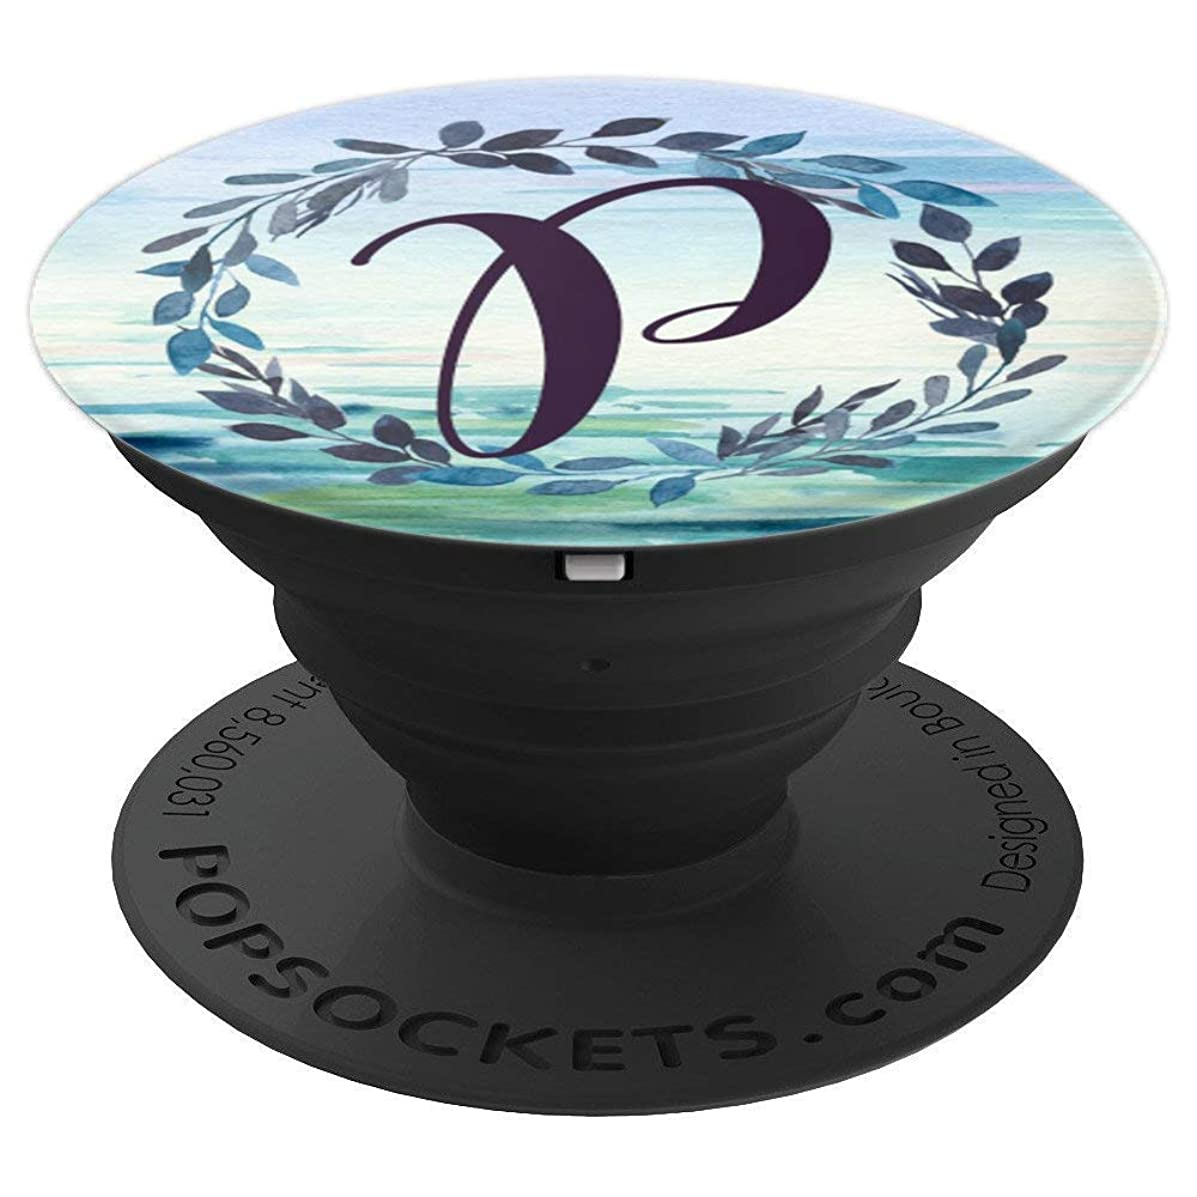 Monogram Letter P Initial Floral Botanical Ocean Pop Socket - PopSockets Grip and Stand for Phones and Tablets